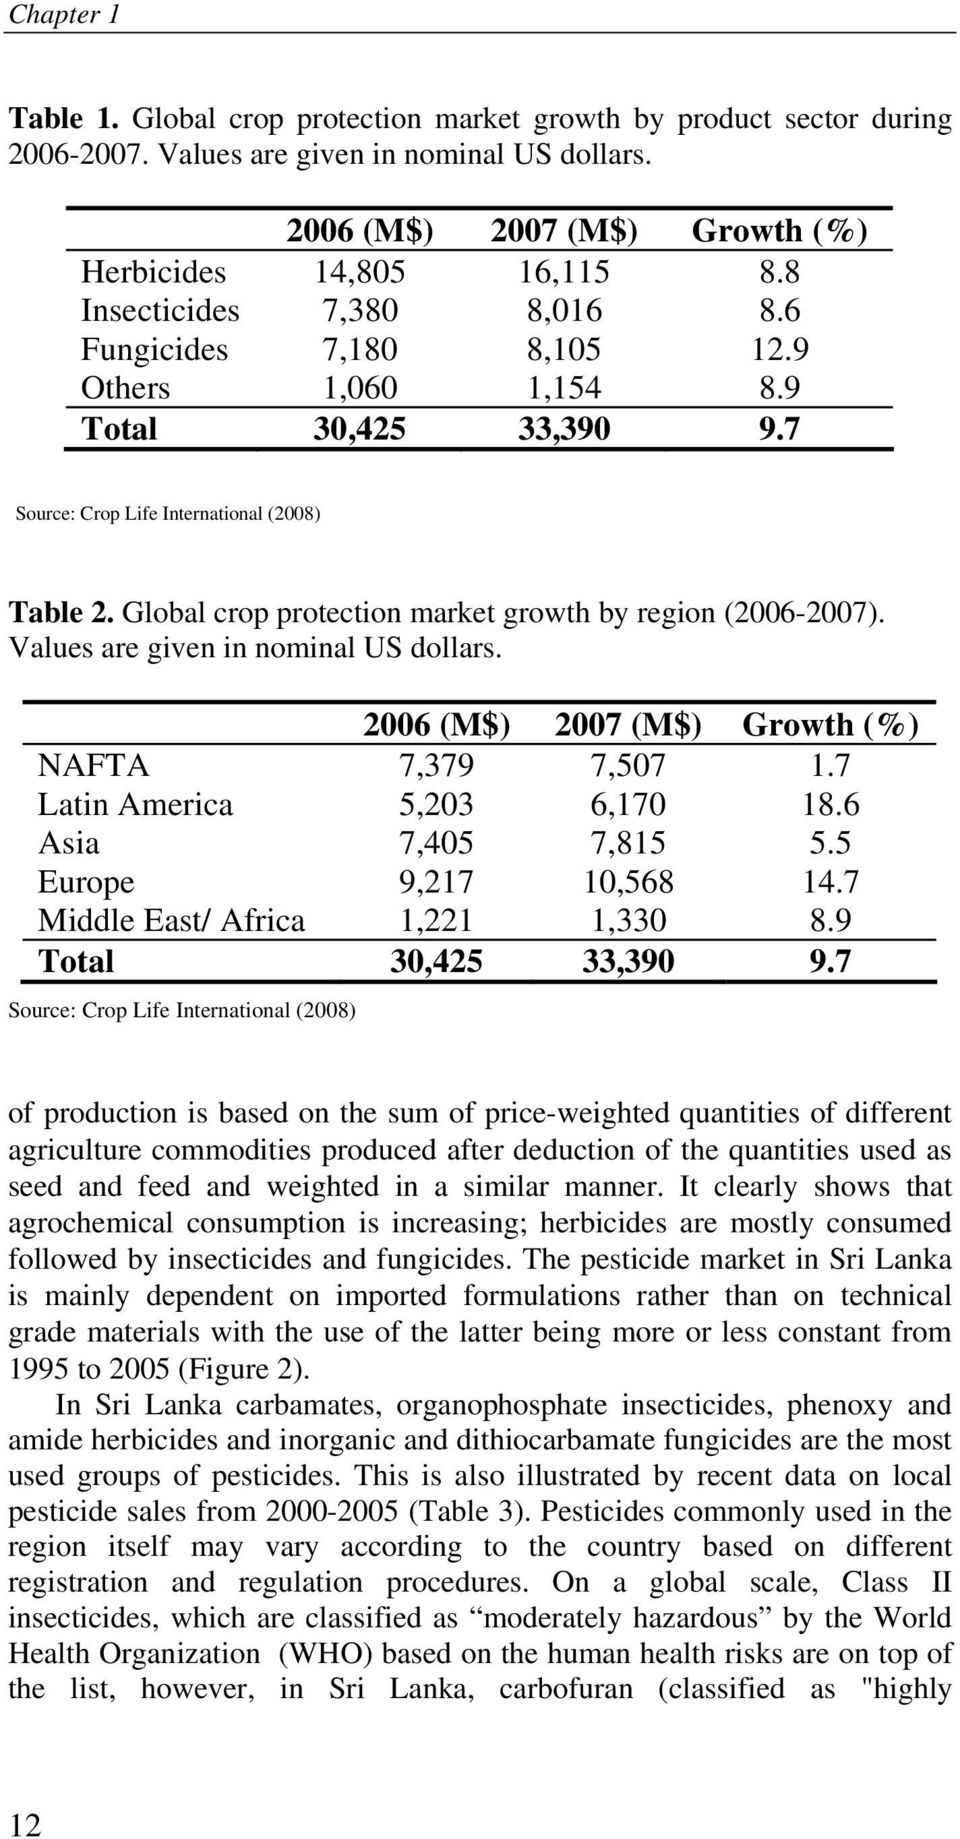 Global crop protection market growth by region (2006-2007). Values are given in nominal US dollars. 2006 (M$) 2007 (M$) Growth (%) NAFTA 7,379 7,507 1.7 Latin America 5,203 6,170 18.